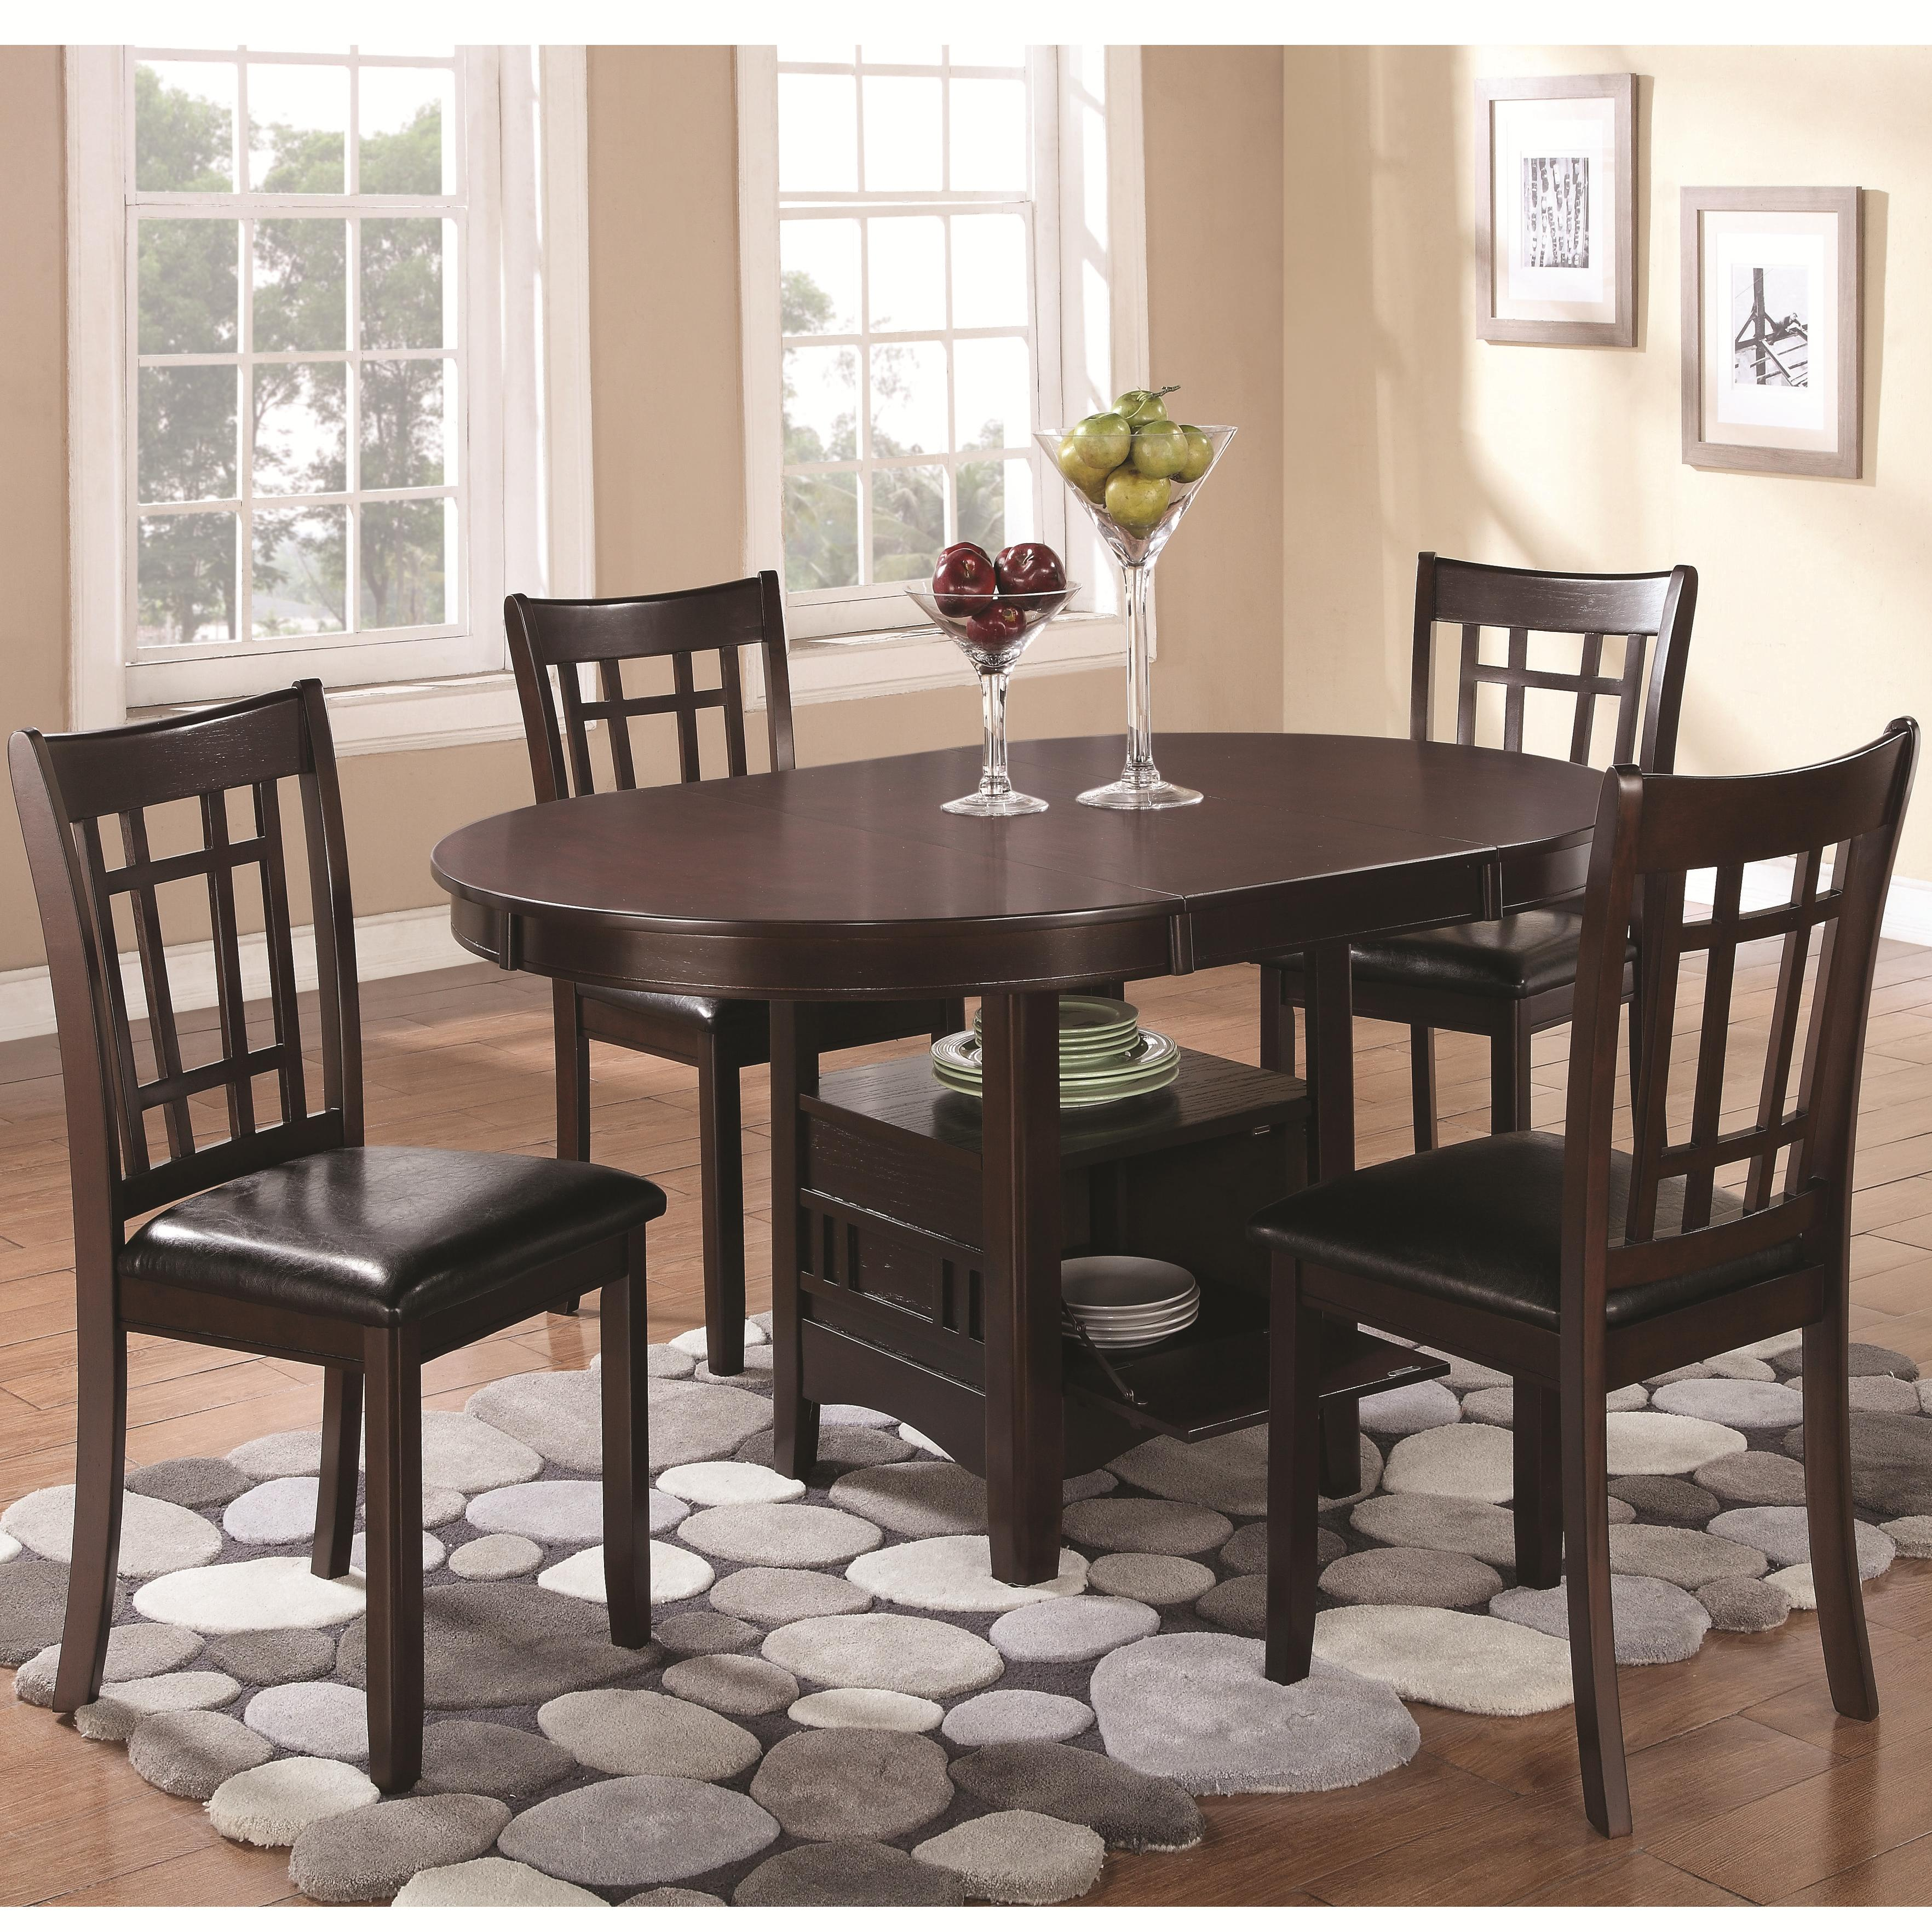 Coaster Lavon 5pc Espresso Dining Table Set